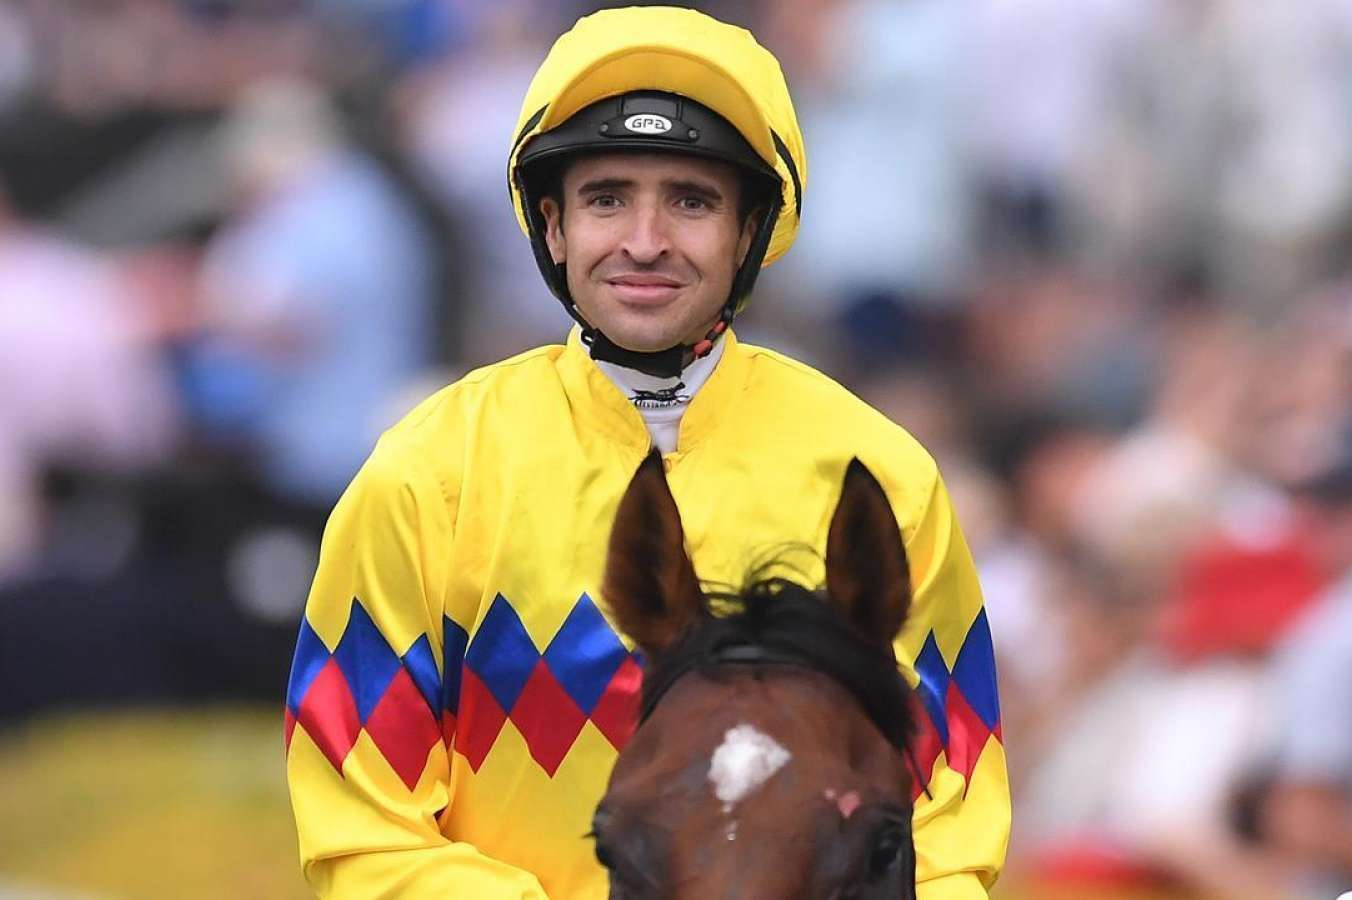 Top jockey Michael Rodd set for return after two-month ...